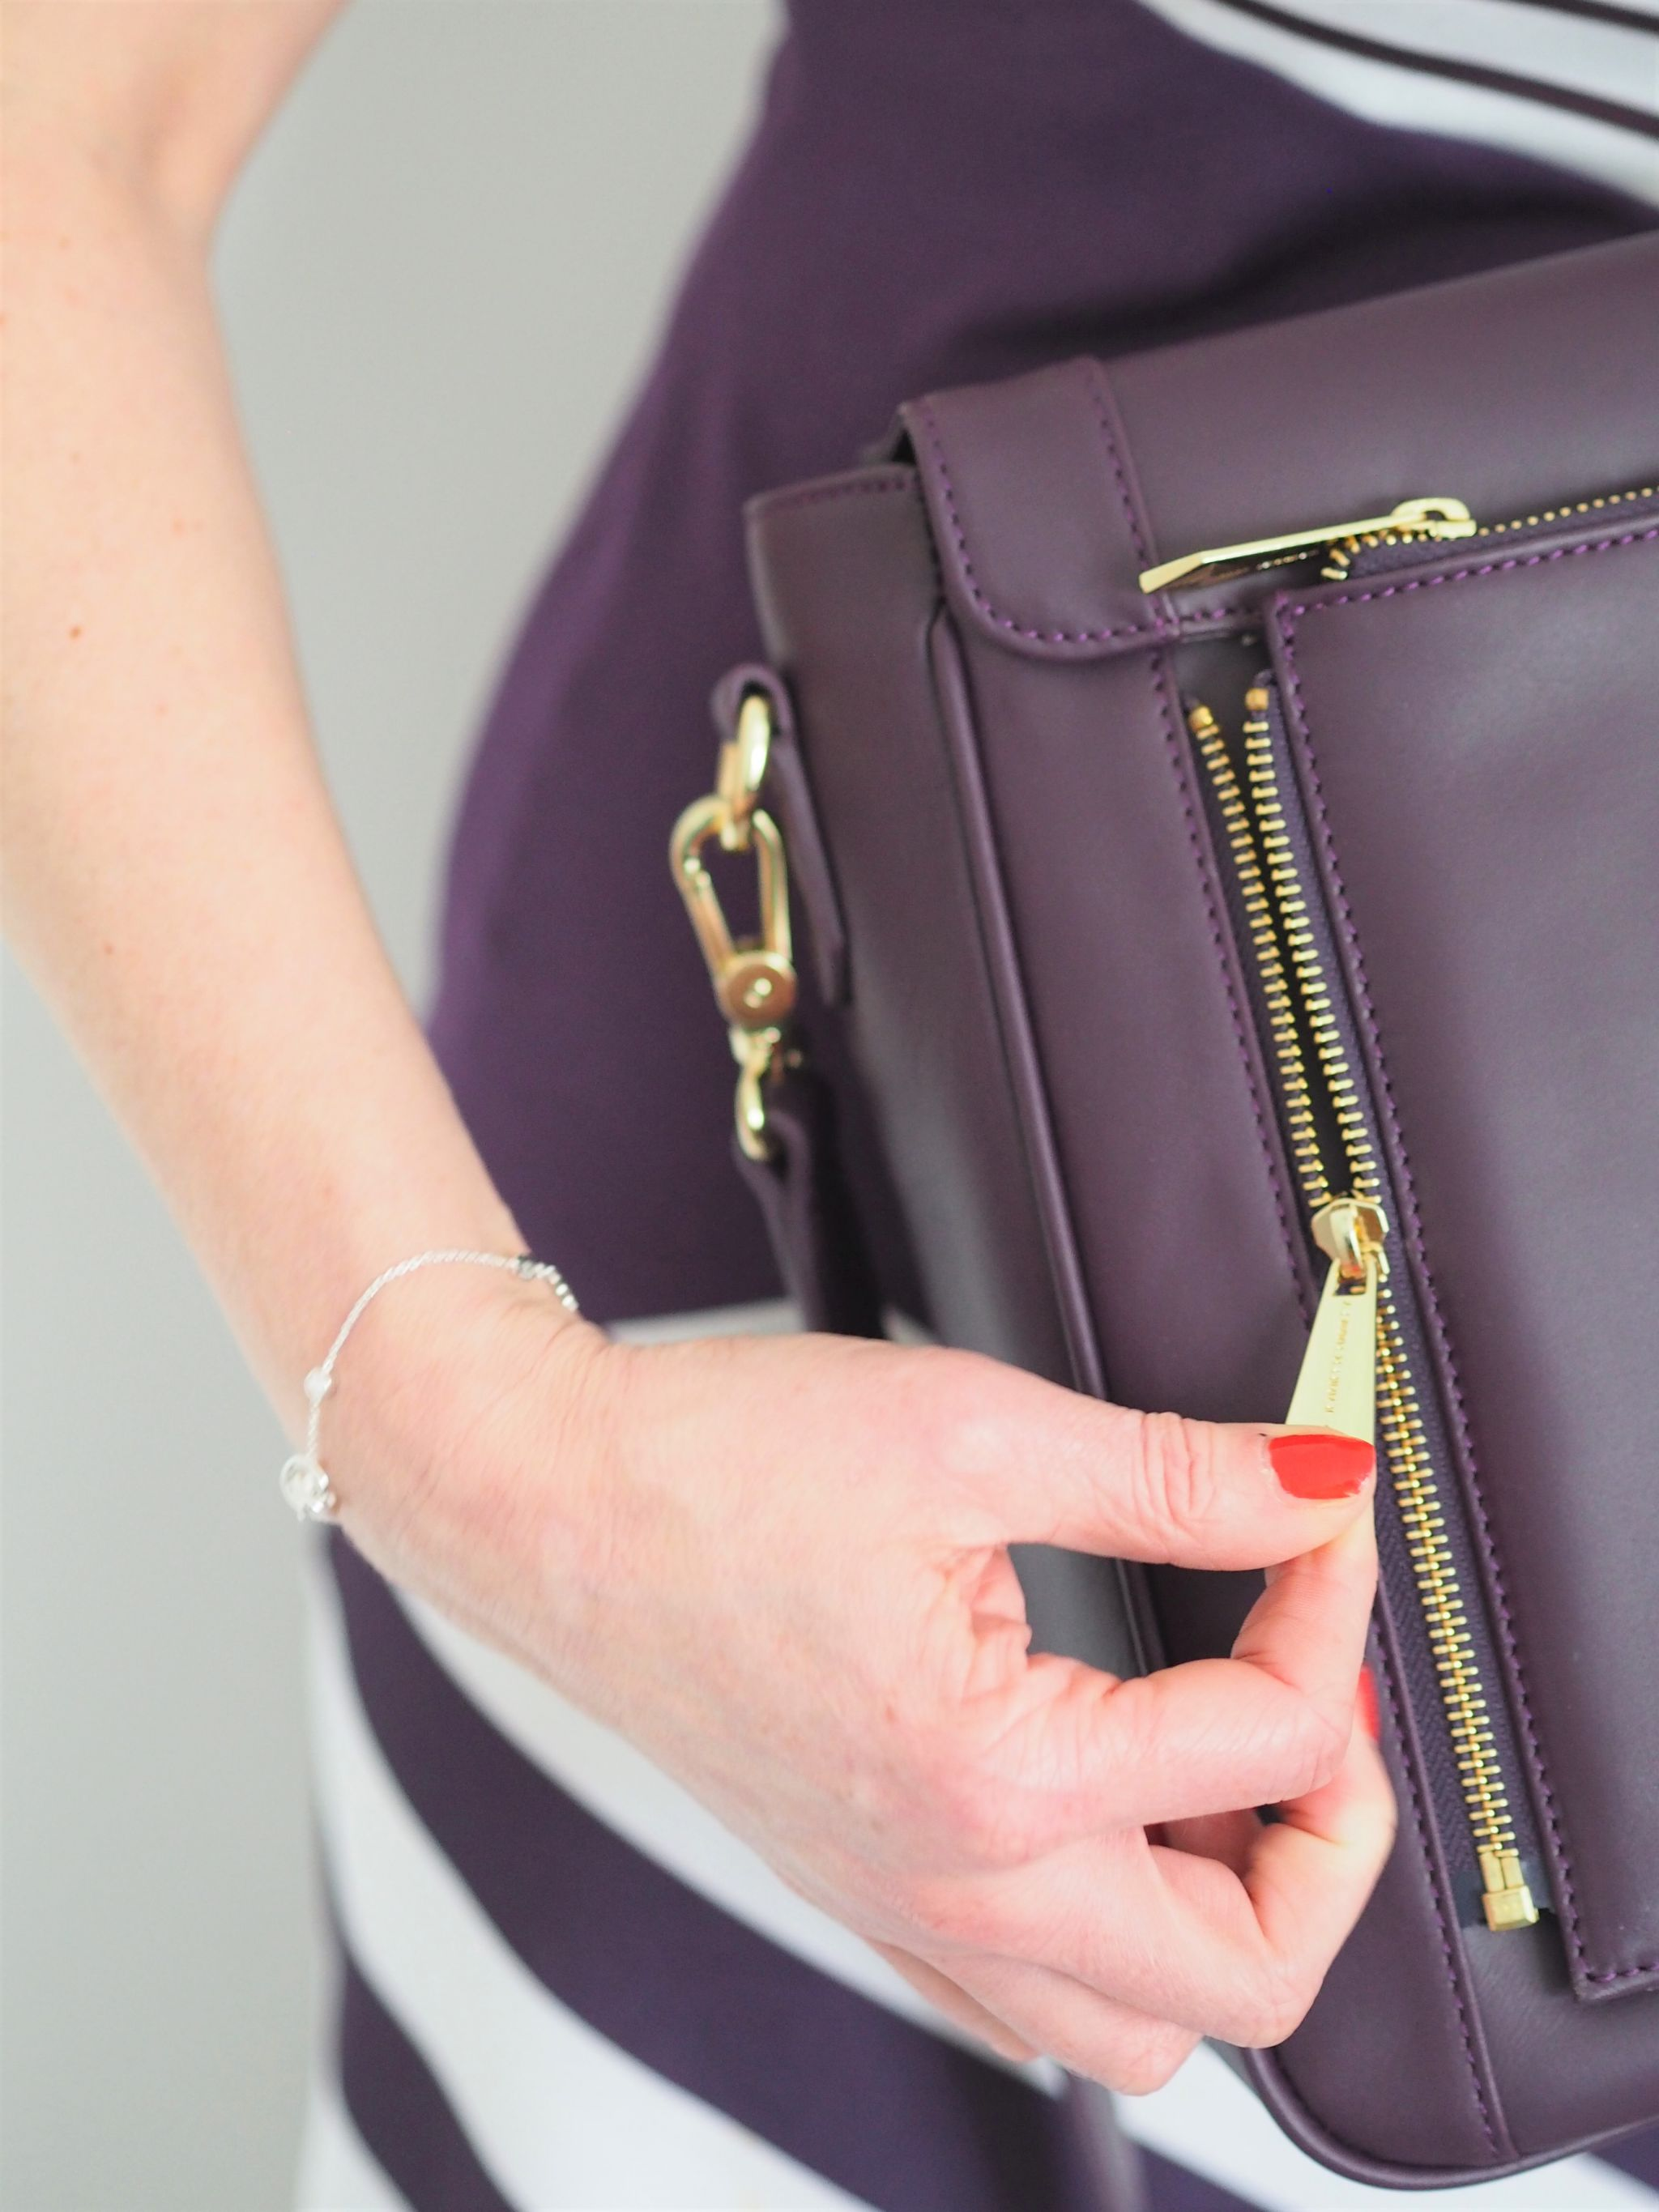 what-lizzy-loves-jennifer hamley-model-kt-review-zip-off-clutch-aubergine-leather